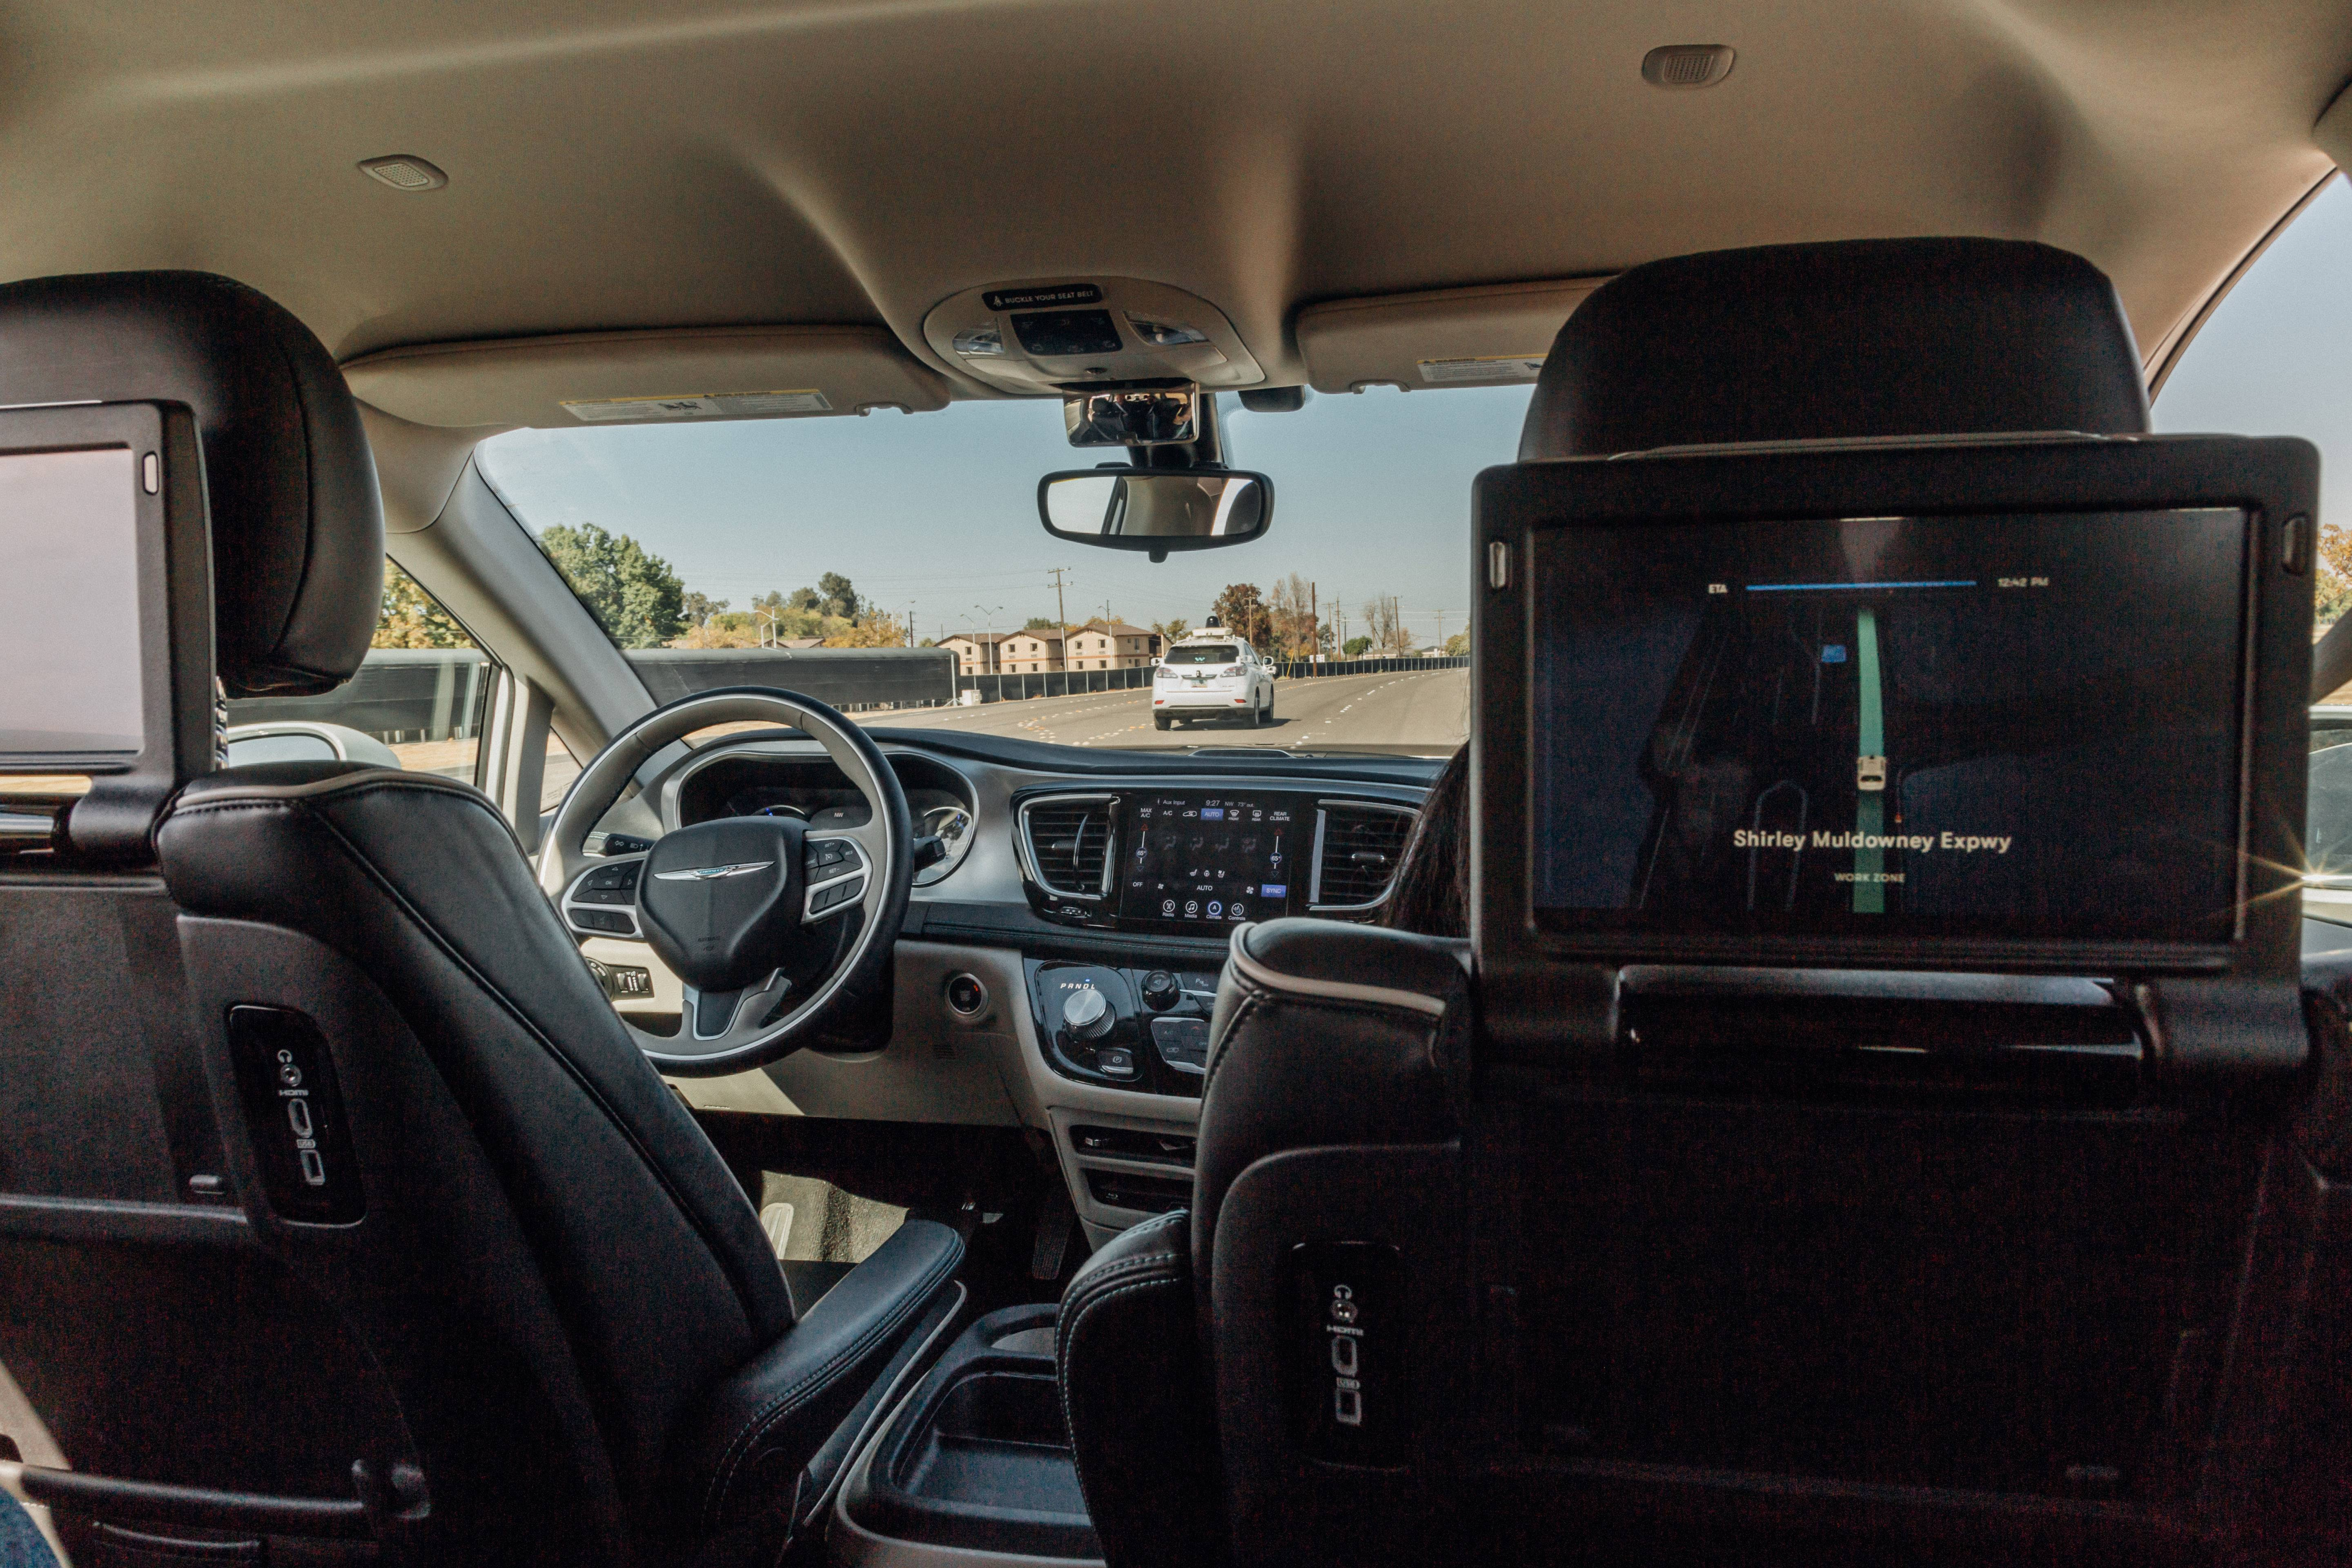 Experts say there is some evidence that true self-driving cars would reduce DUIs. These differ significantly from the semi-autonomous cars currently on the market, which still require active input from a human driver.